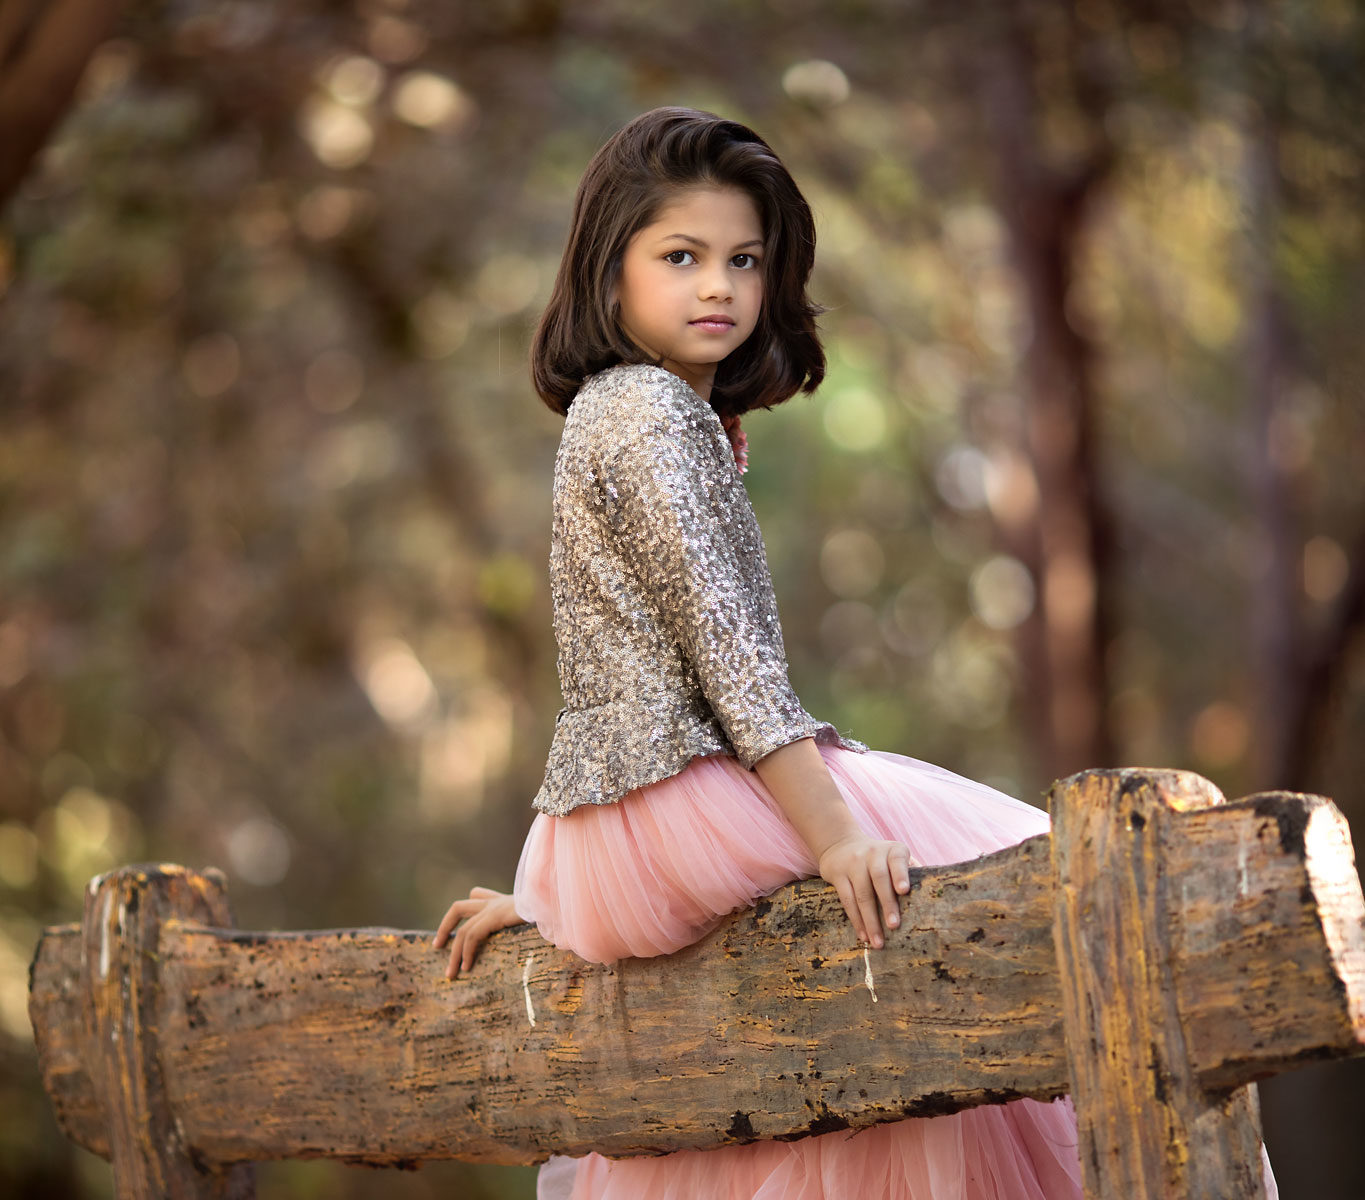 Beautiful girl sitting on bench in the forest